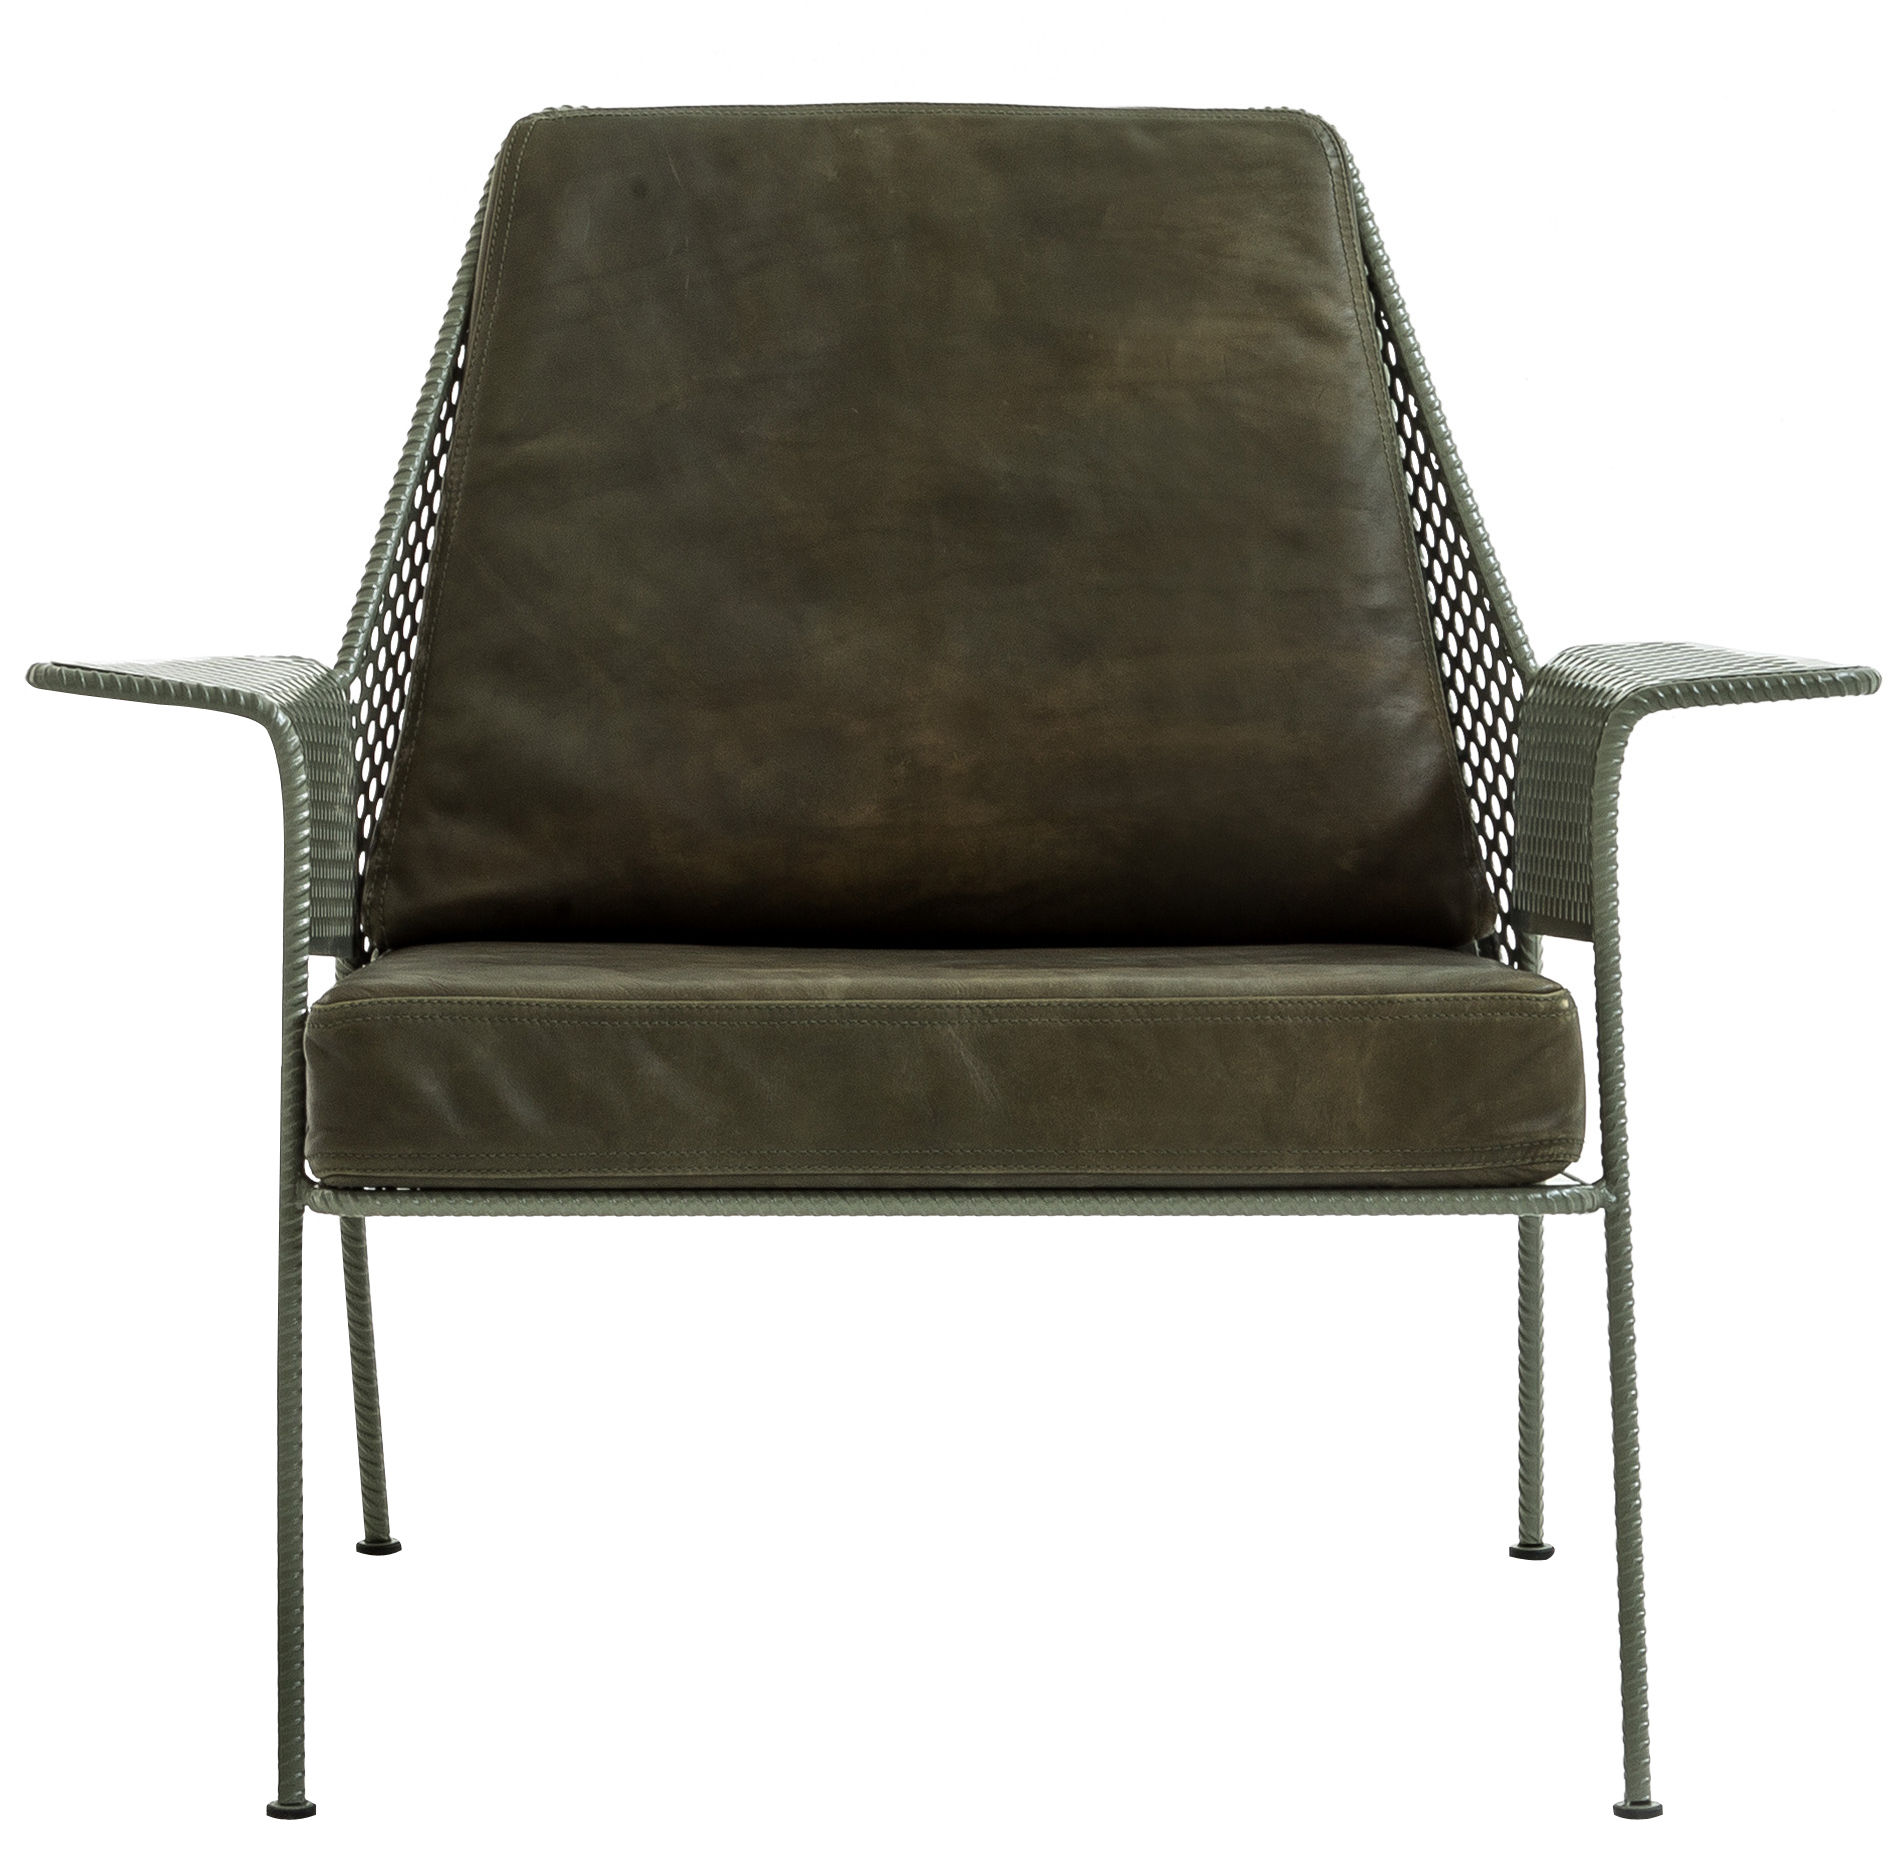 Work is over Padded armchair Khaki by Diesel with Moroso   Made In ...